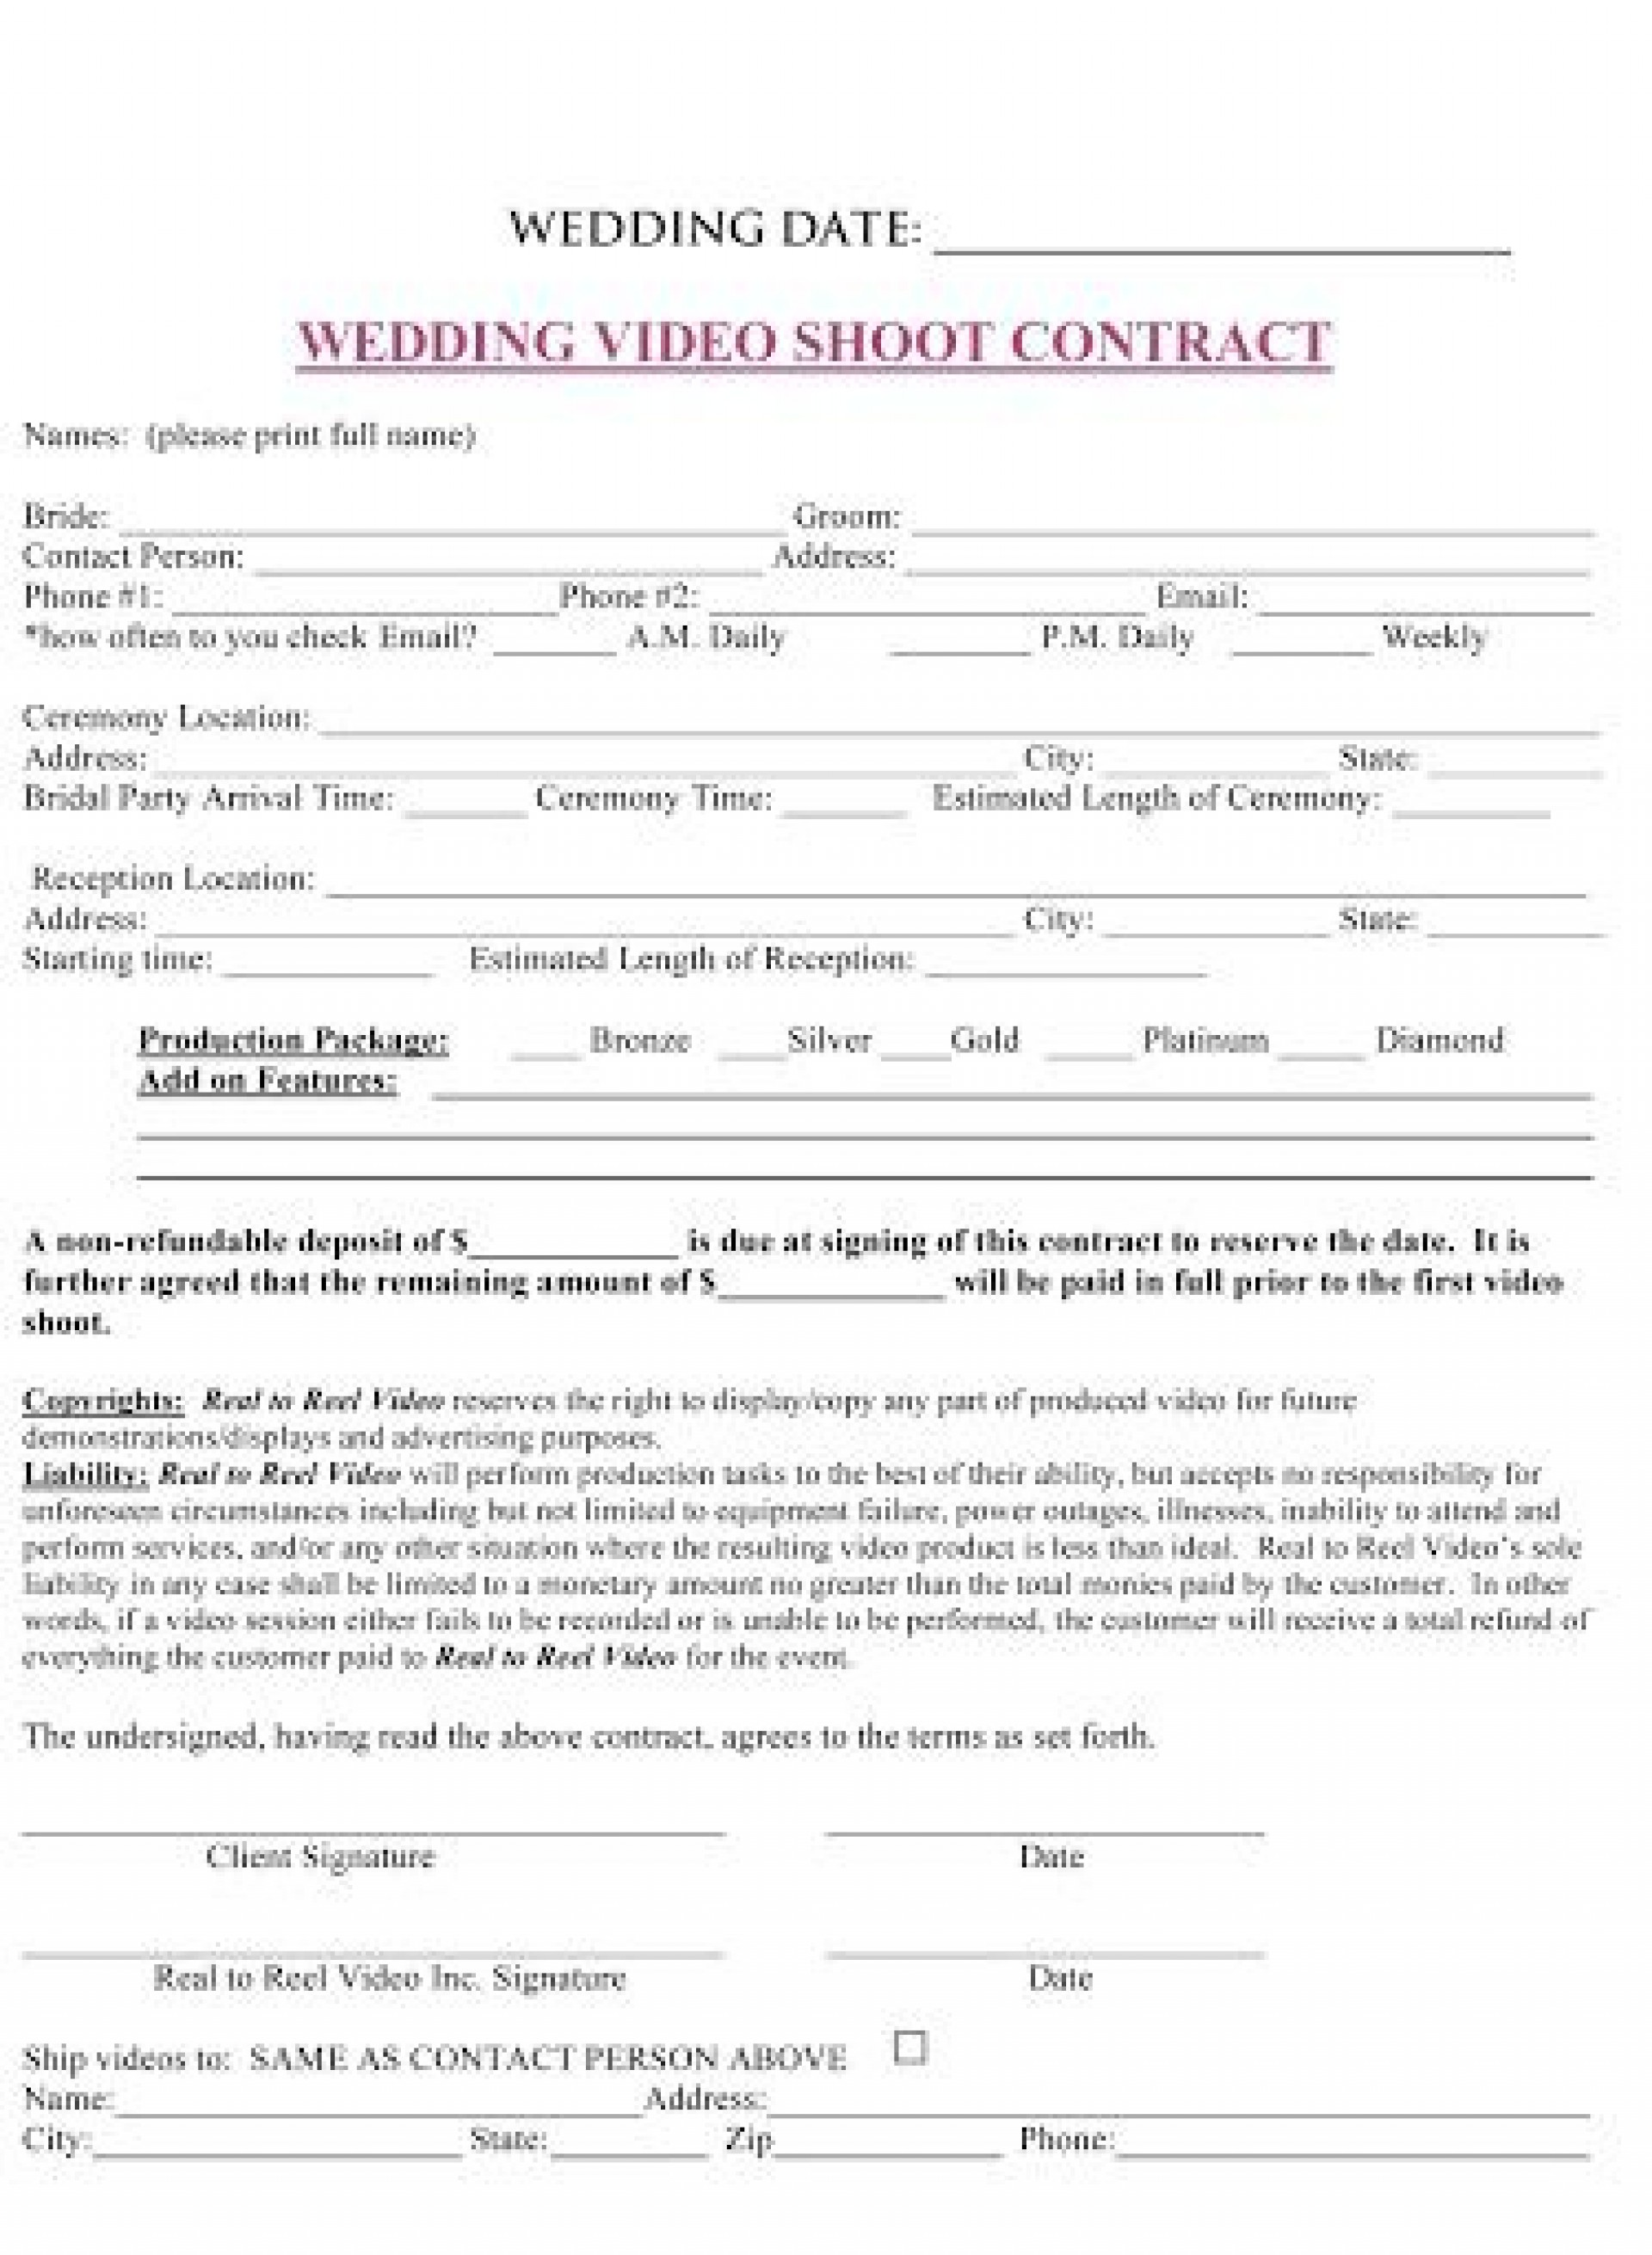 009 Top Wedding Planner Contract Template Highest Quality  Word Planning Coordinator Free1920